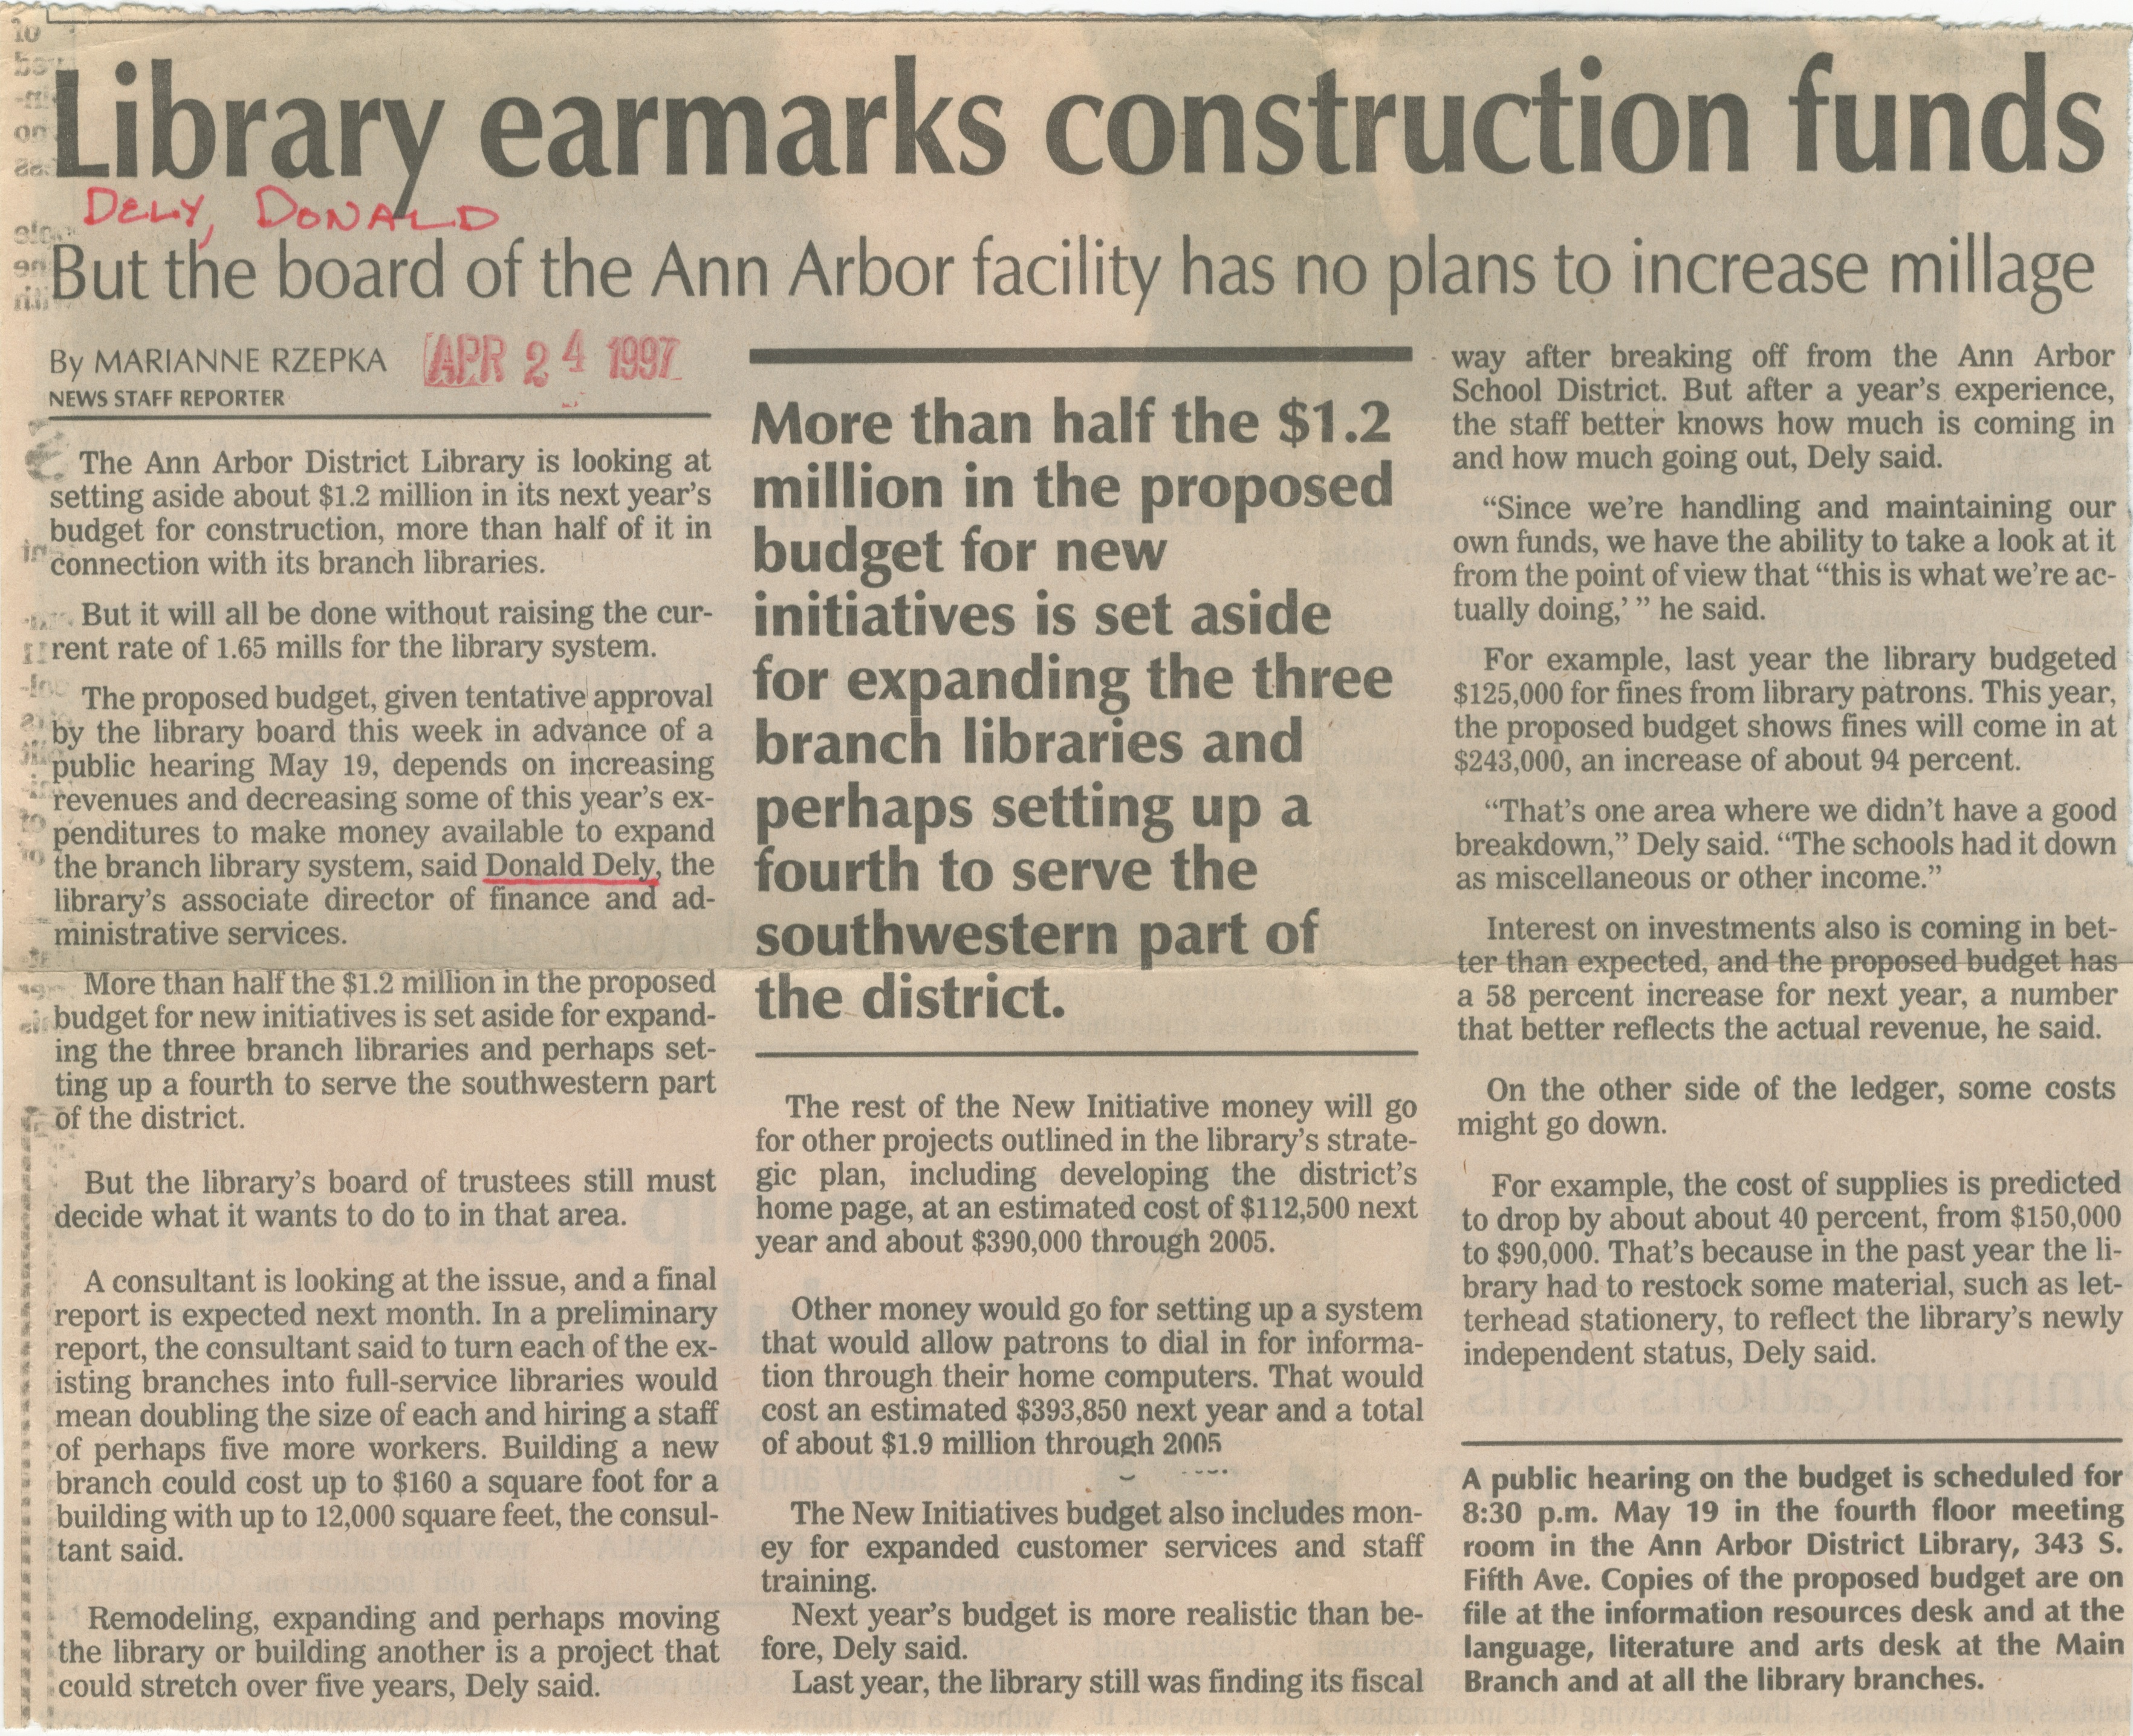 Library Earmarks Construction Funds image